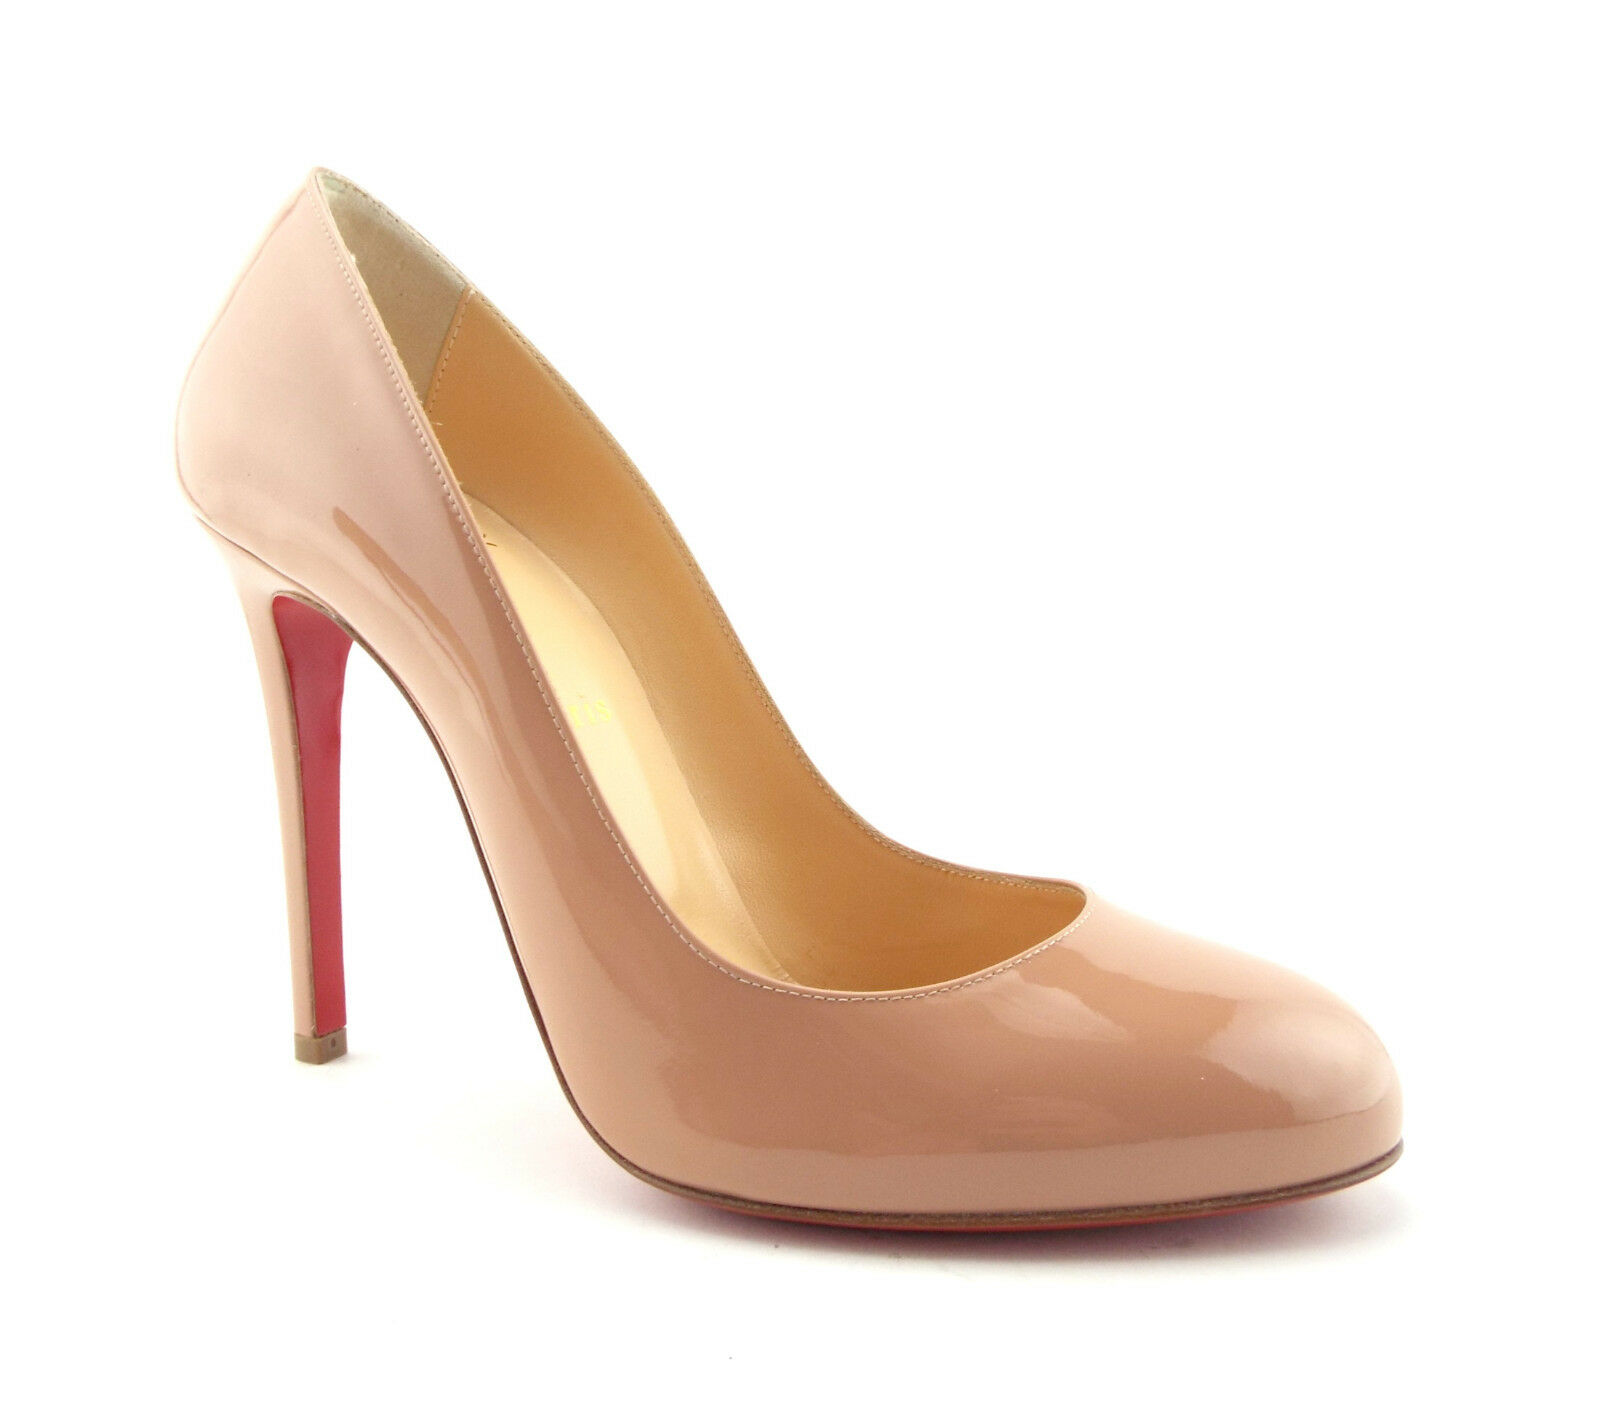 New CHRISTIAN LOUBOUTIN Size 8.5 FIFILLE Nude Patent Heels Pumps shoes 39 FIFI